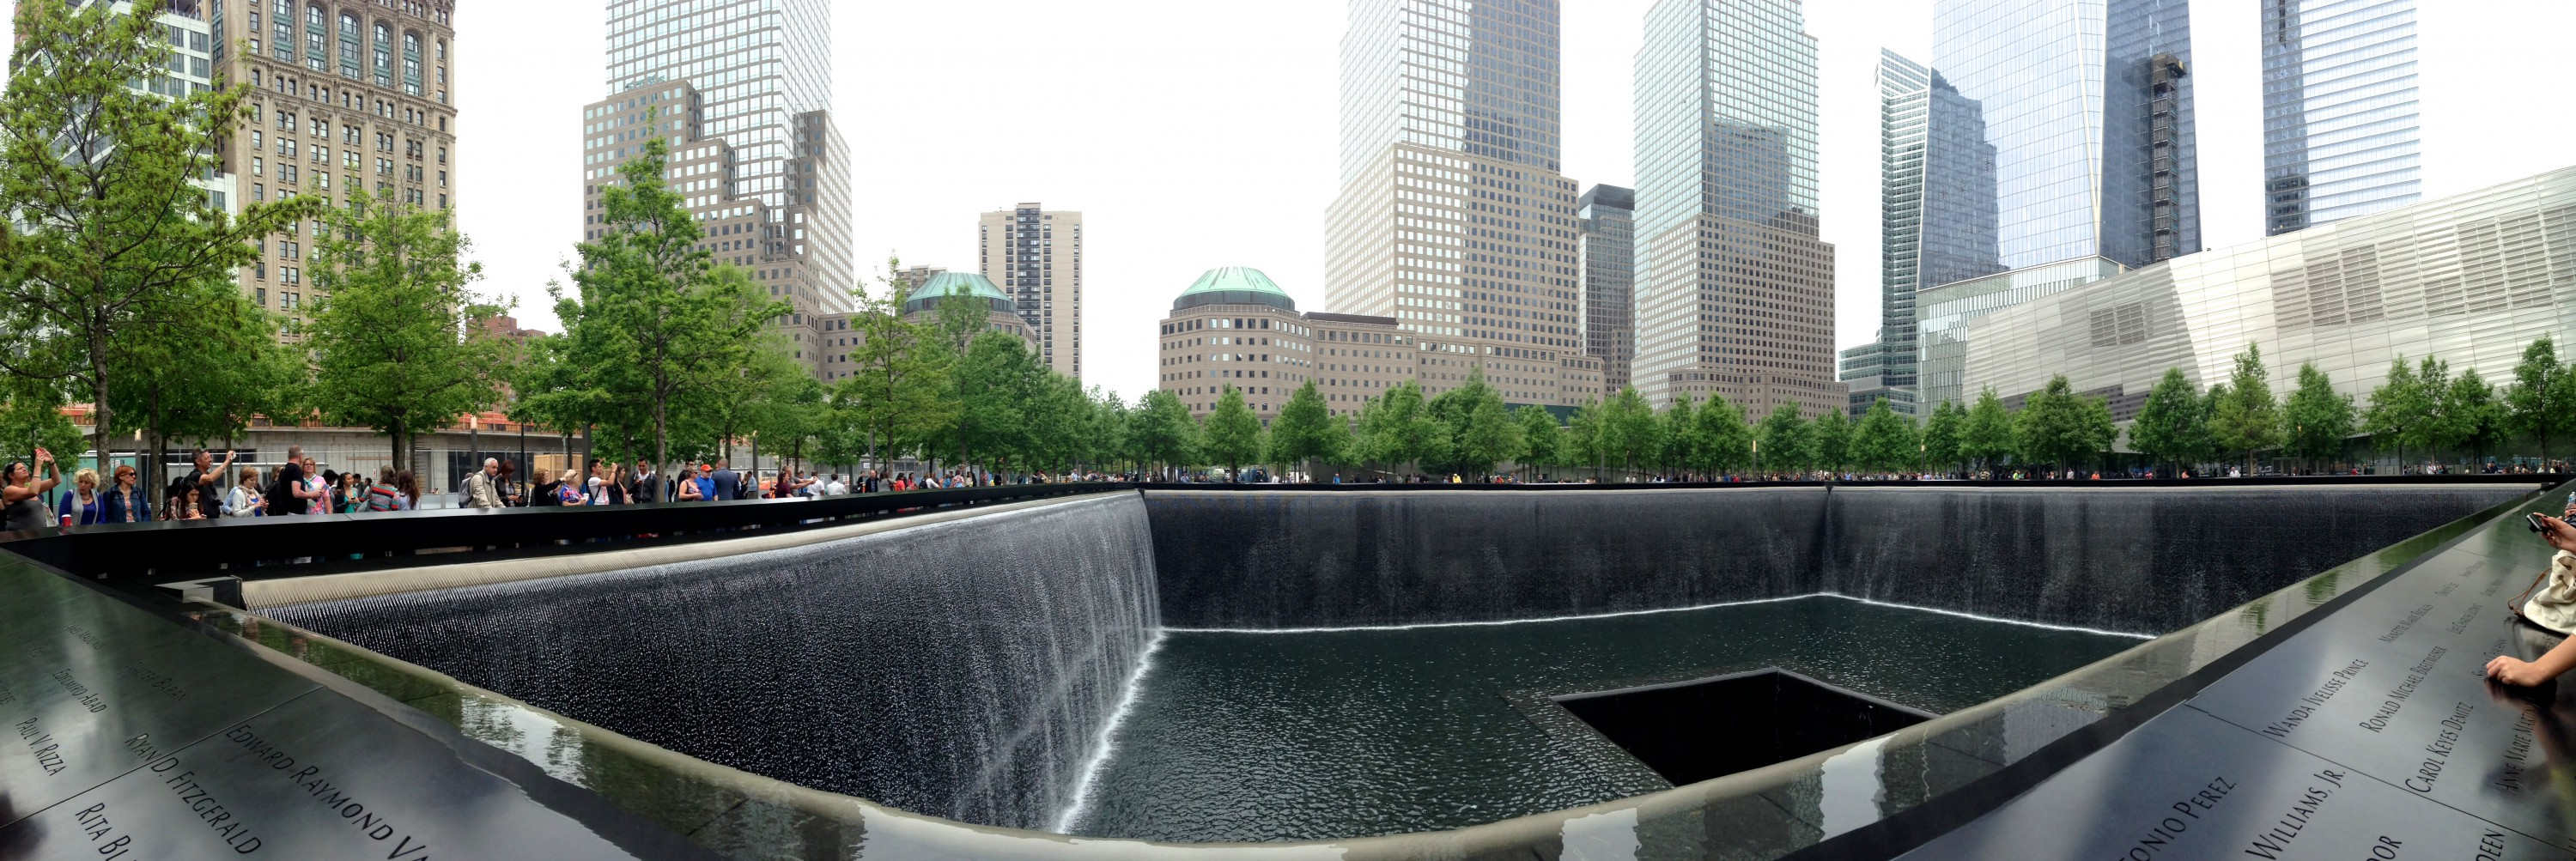 september 11 memorial nyc panorama